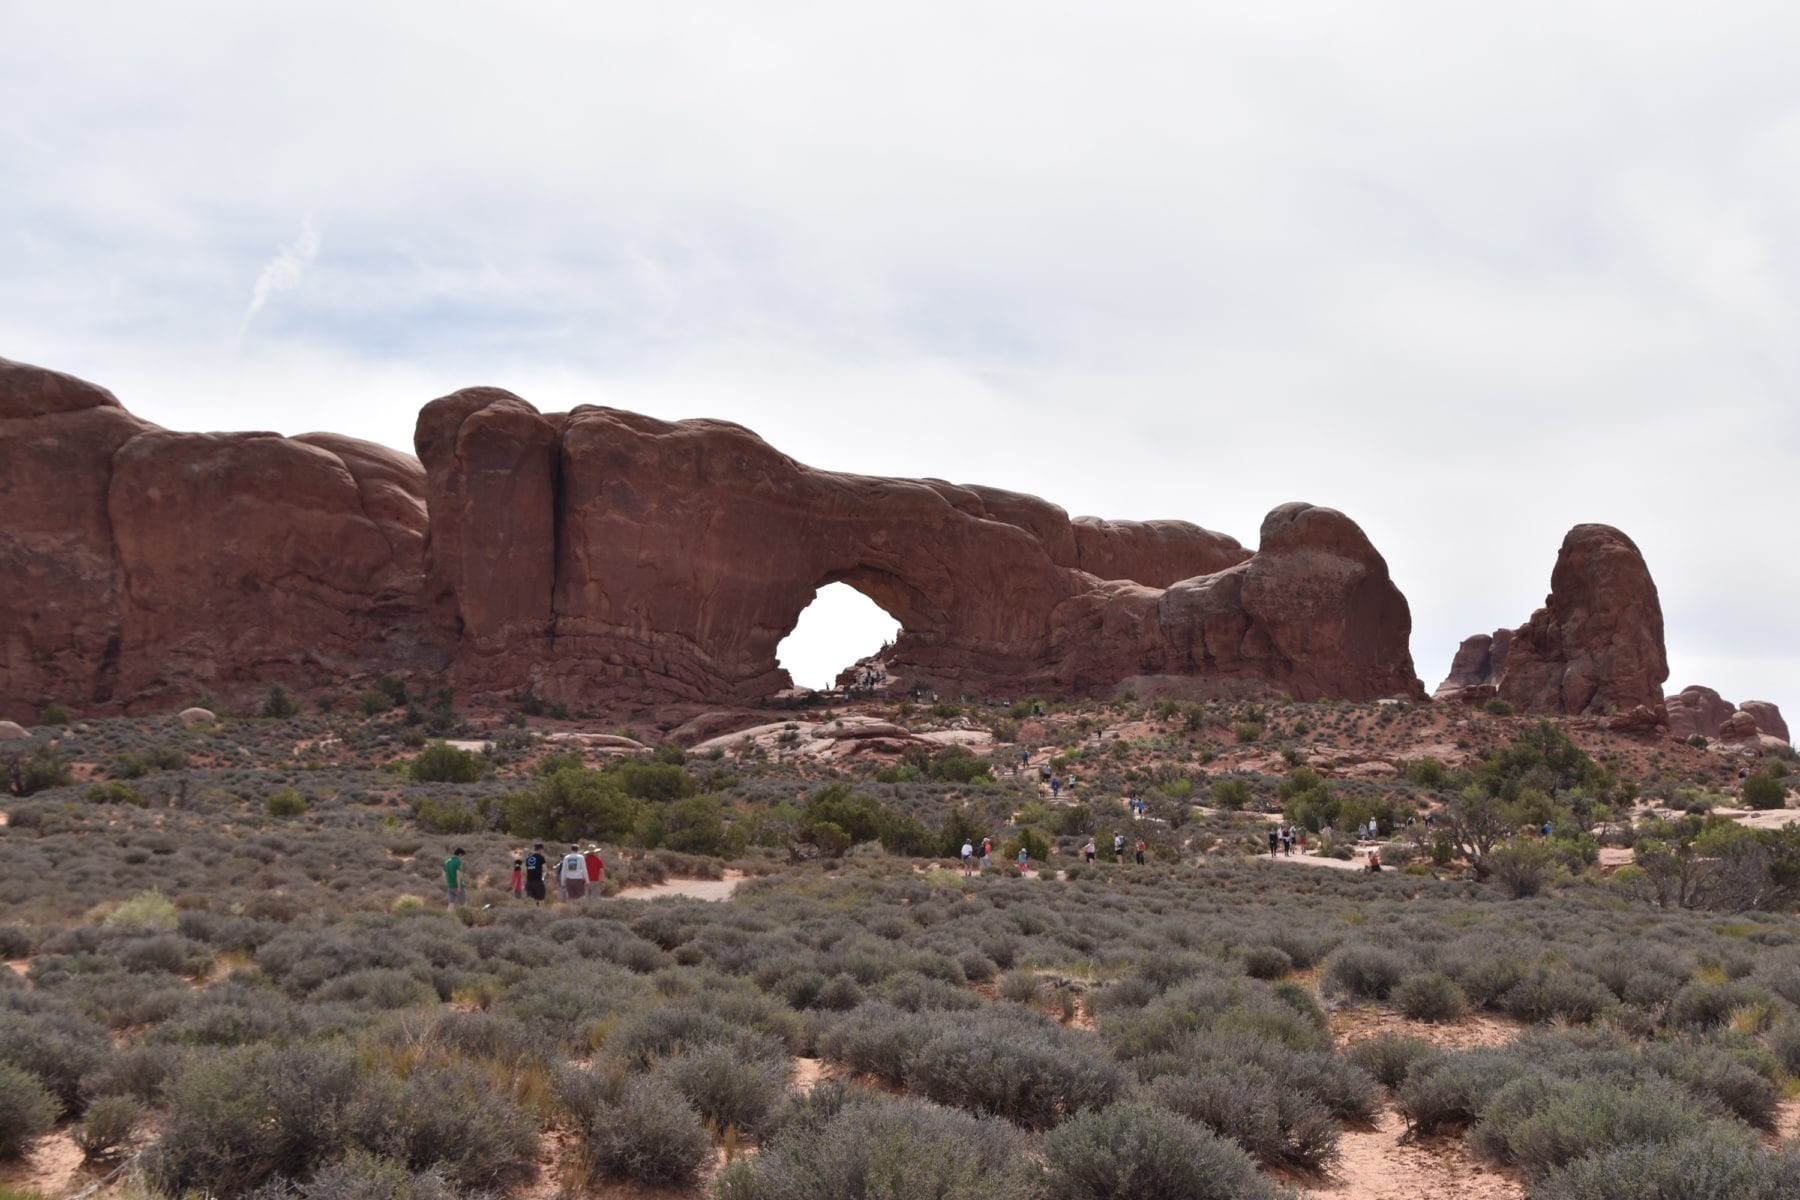 The Windows Trail at Arches National Park